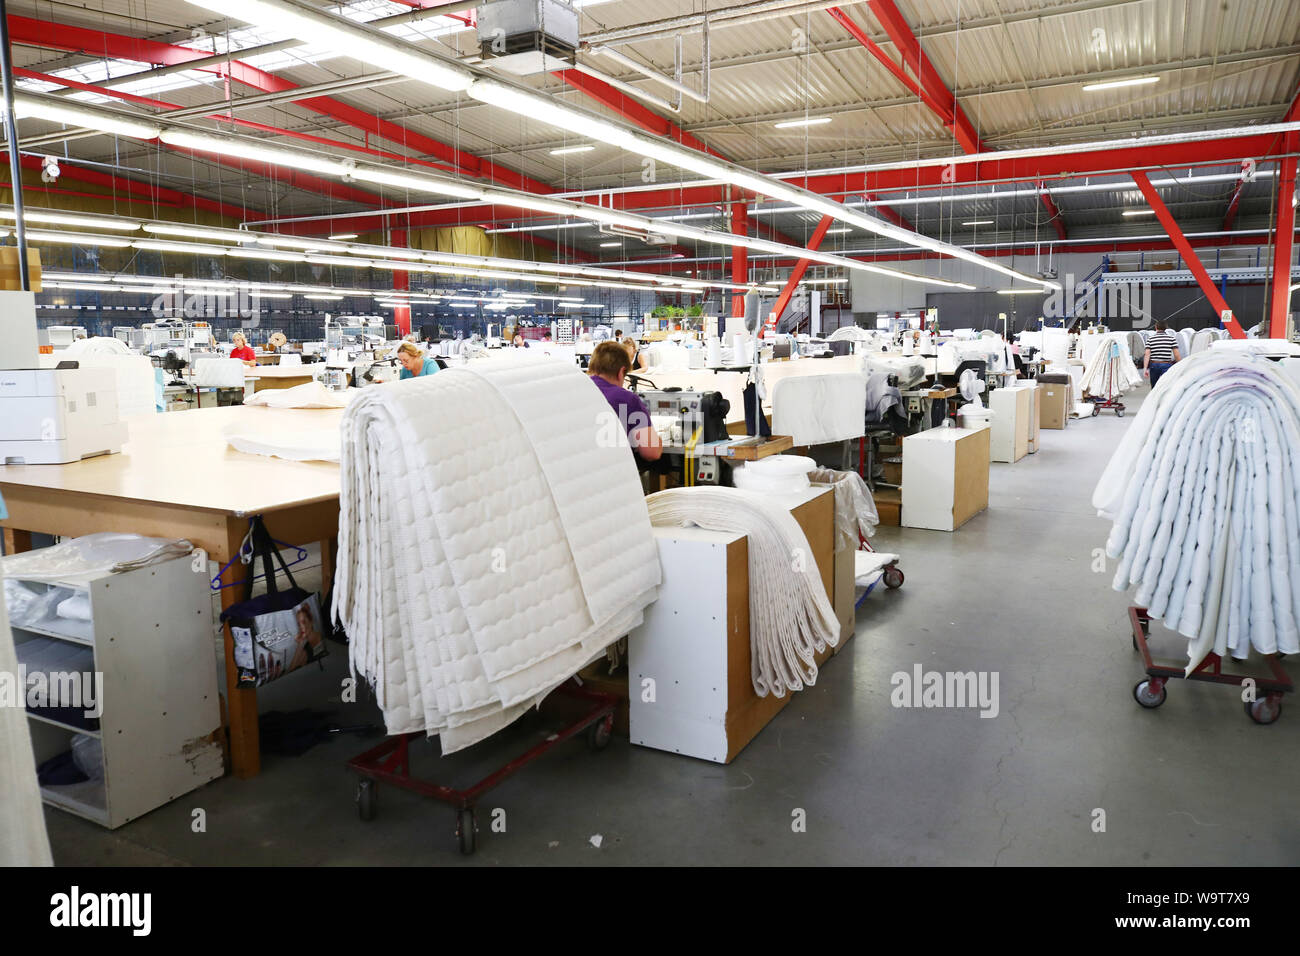 Weida Germany 15th Aug 2019 Sewing Assistants Produce Mattress Covers At Breckle Matratzenwerk Weida Gmbh Thuringia S Economics Minister W Tiefensee Spd Visited The Mattress Factory On 15 08 2019 Credit Bodo Schackow Dpa Zentralbild Dpa Alamy